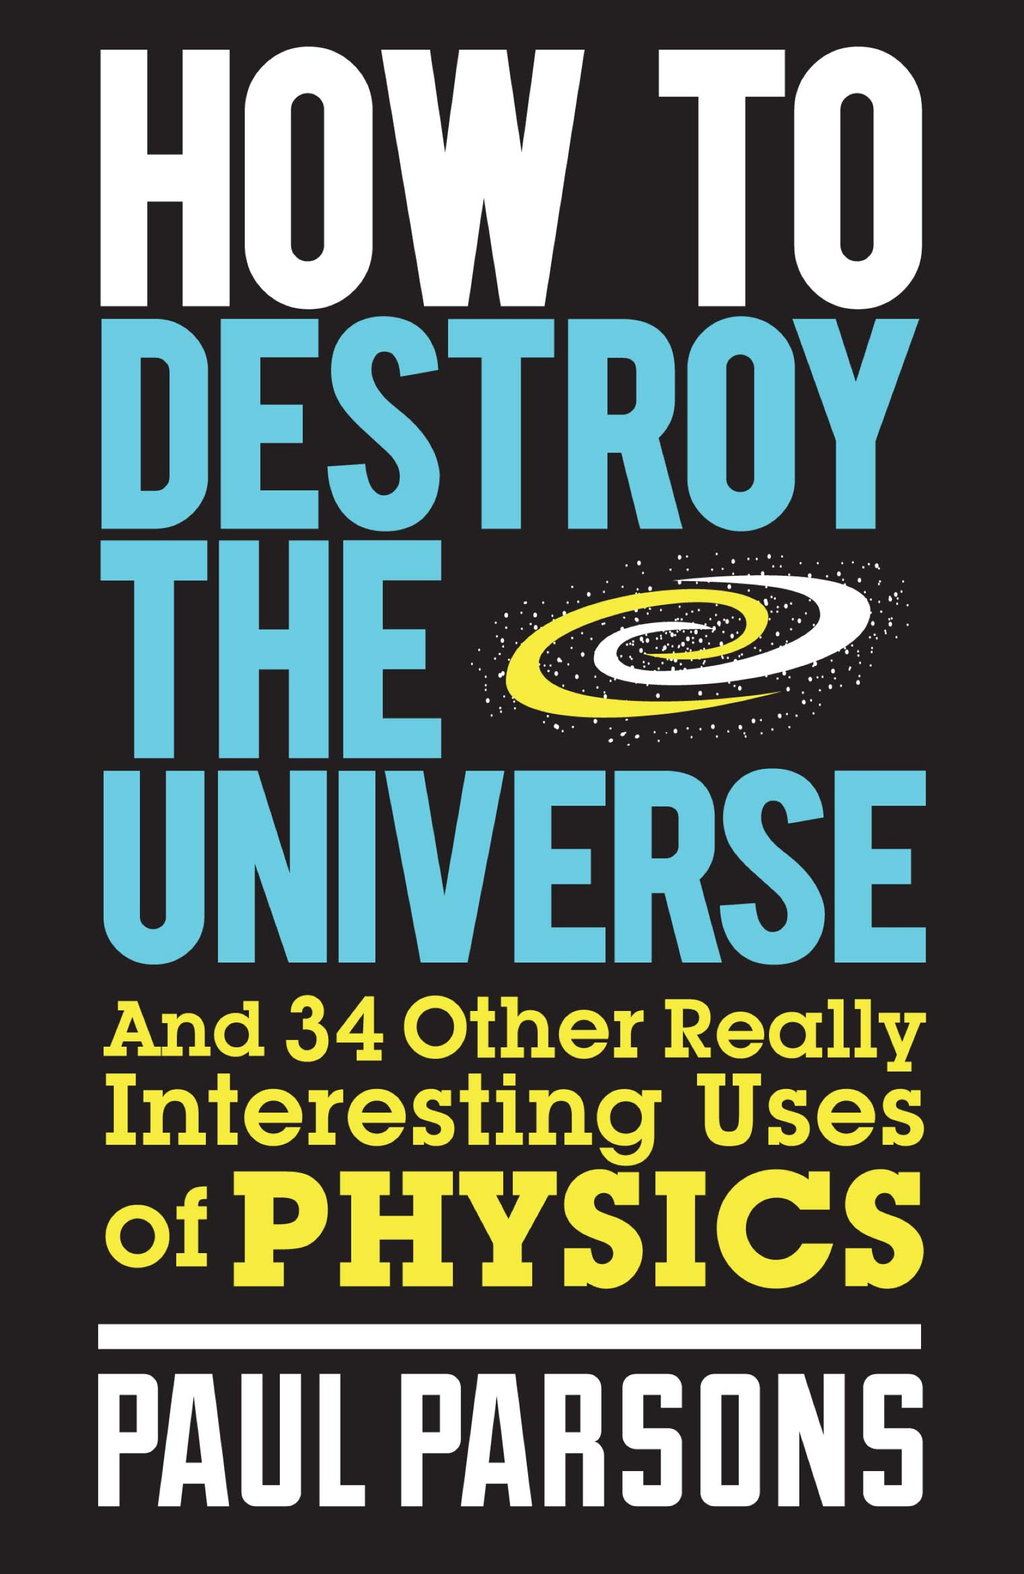 How to Destroy the Universe And 34 Other Really Interesting Uses of Physics